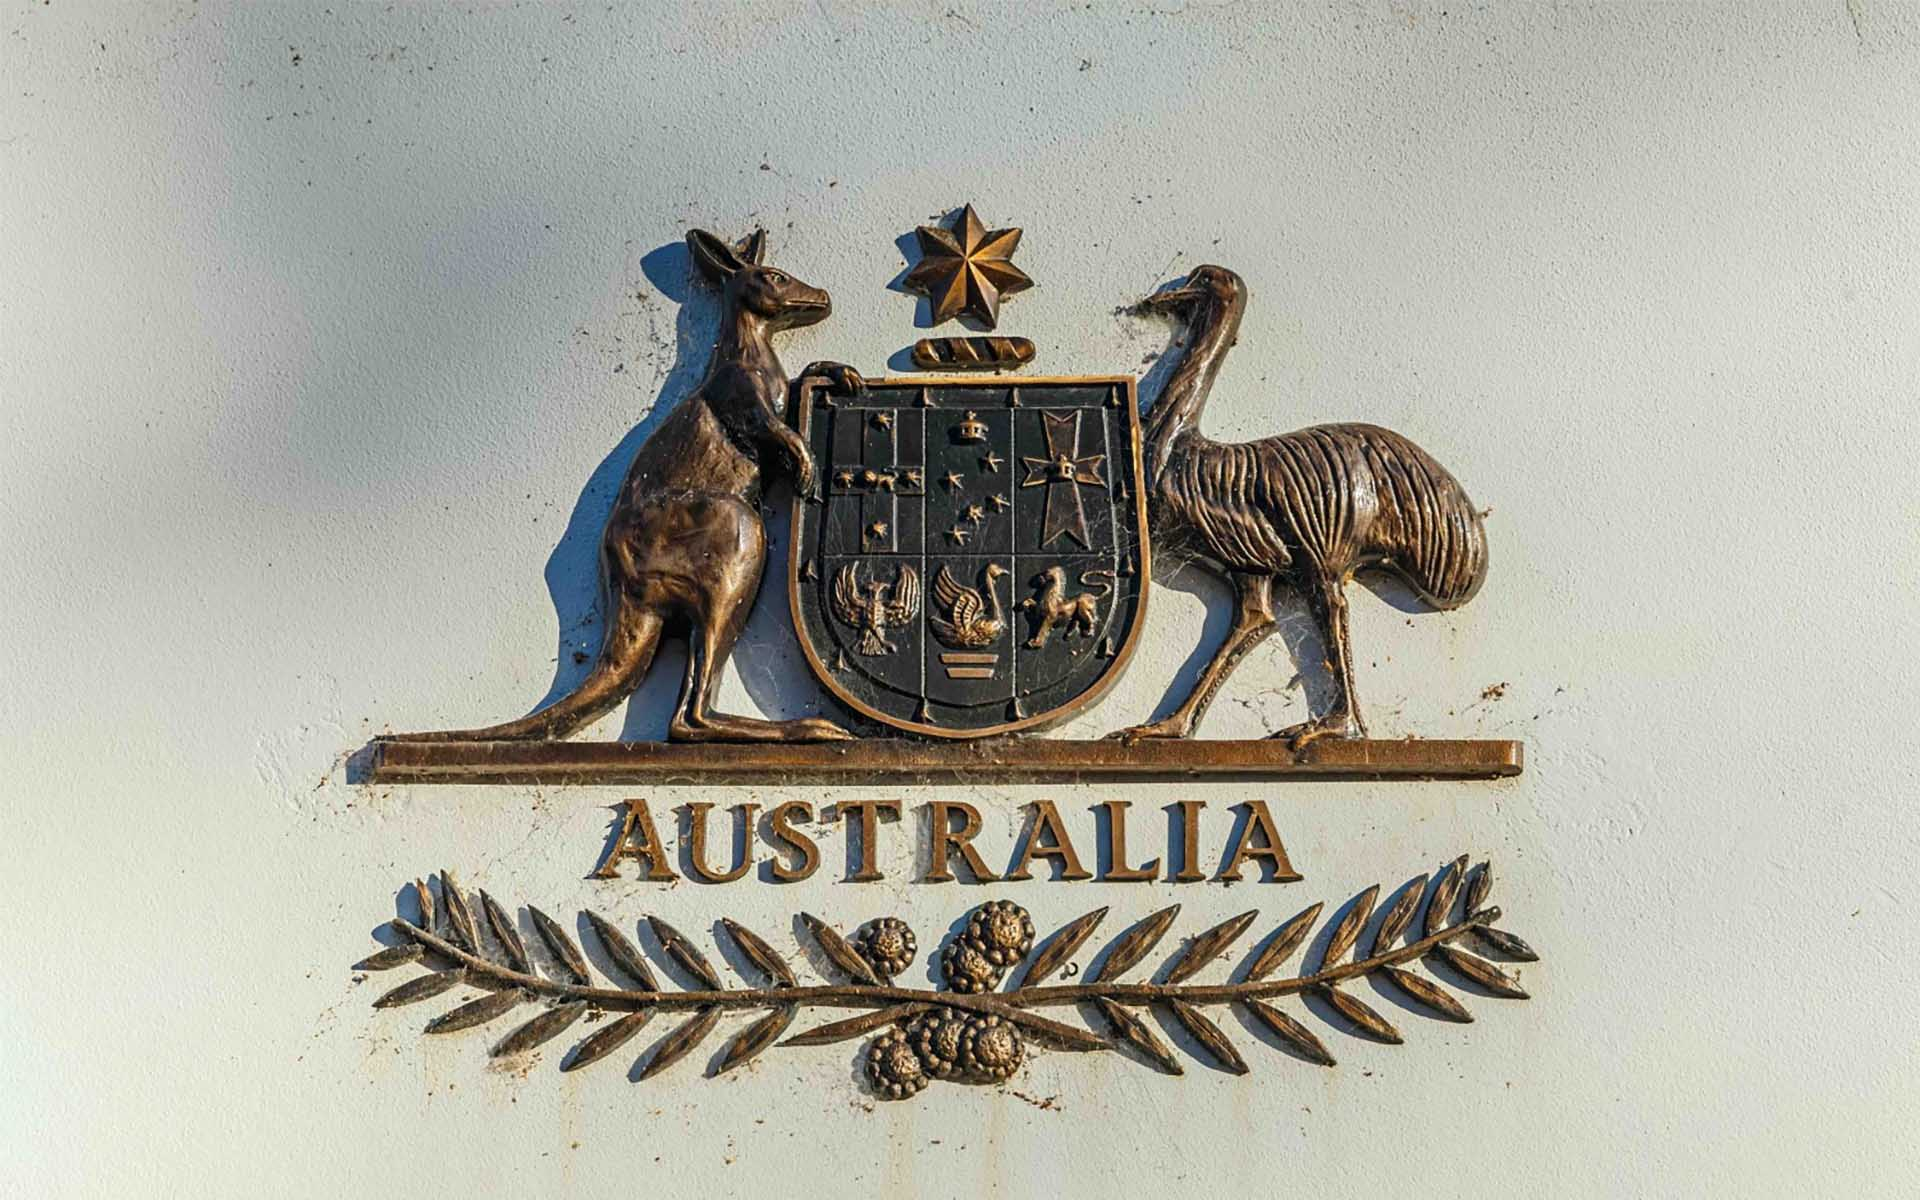 Bitcoin Exchanges in Australia Will Have to Register with the Government